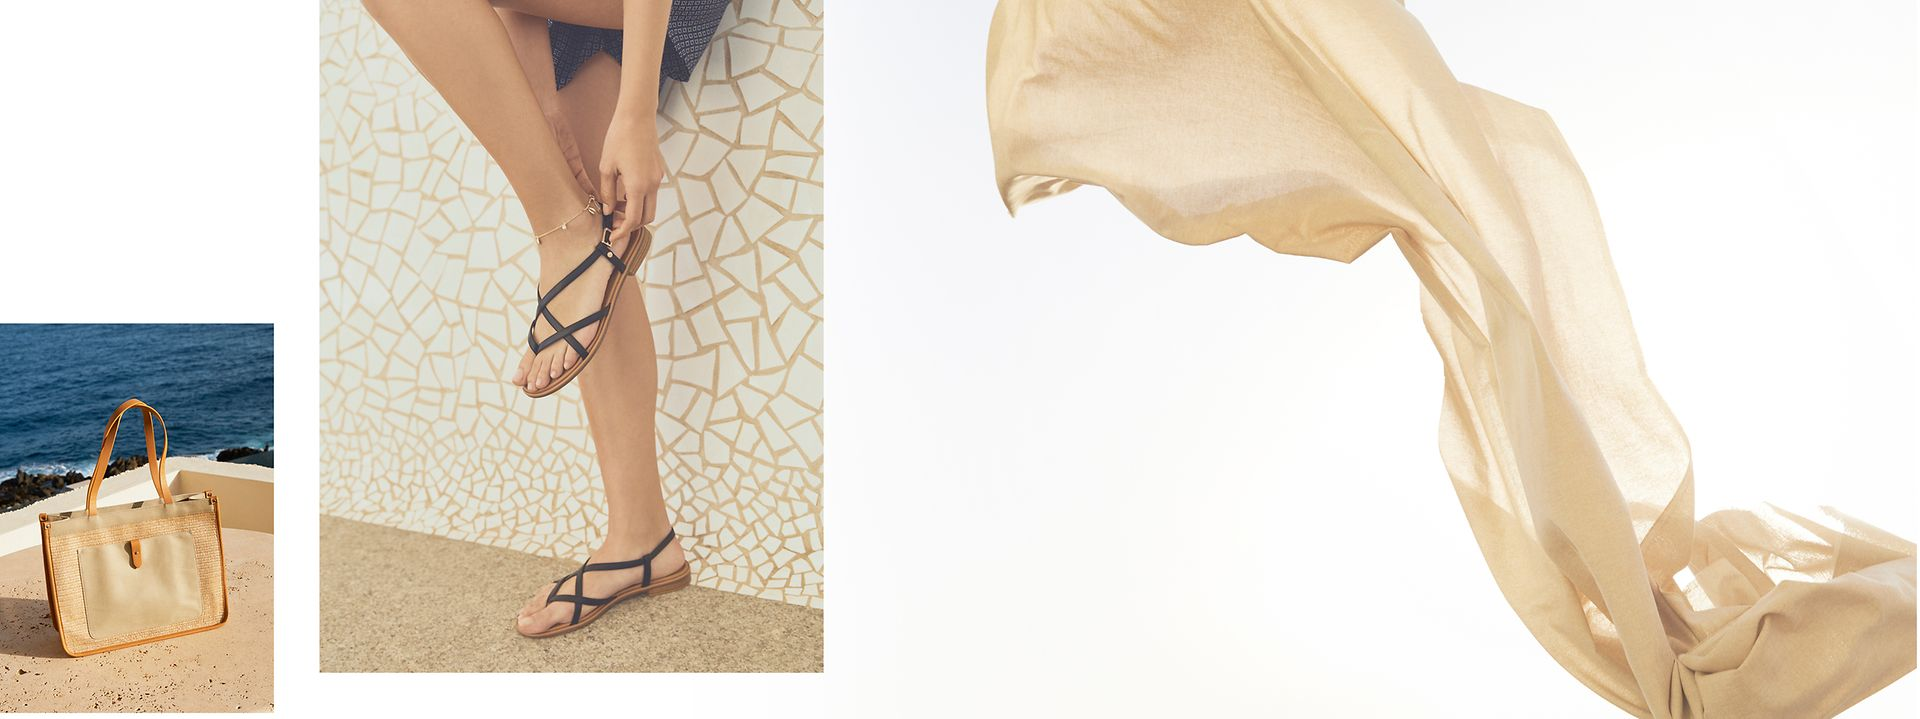 232021 - women - startpage - main banner - accessories - shoes - IMG